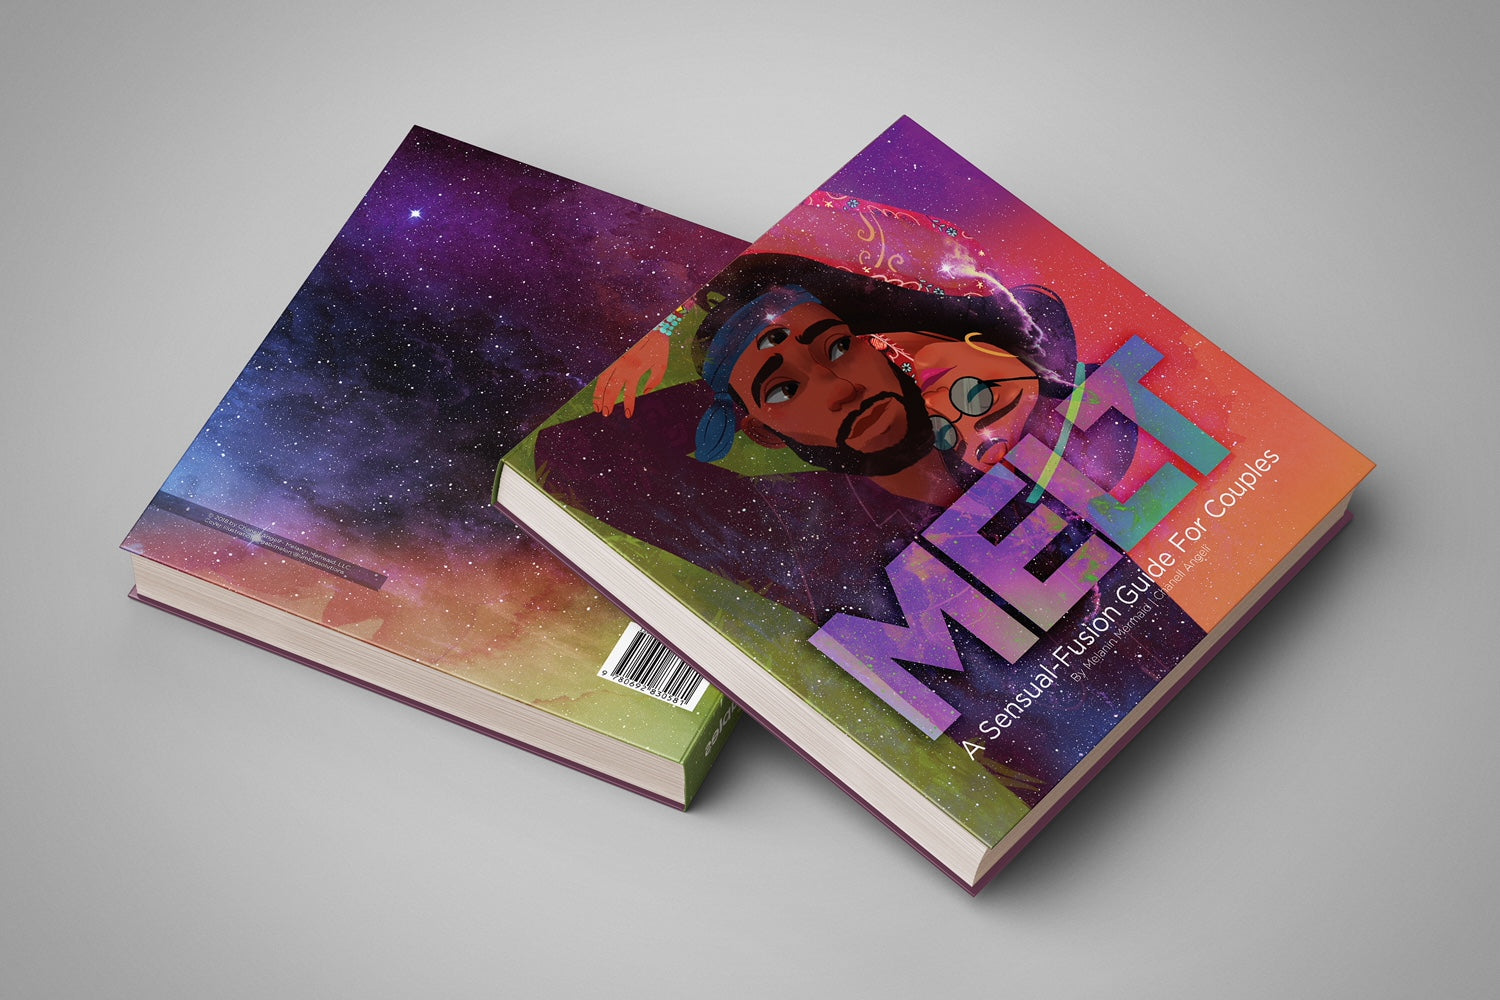 MELT by Melanin Mermaid